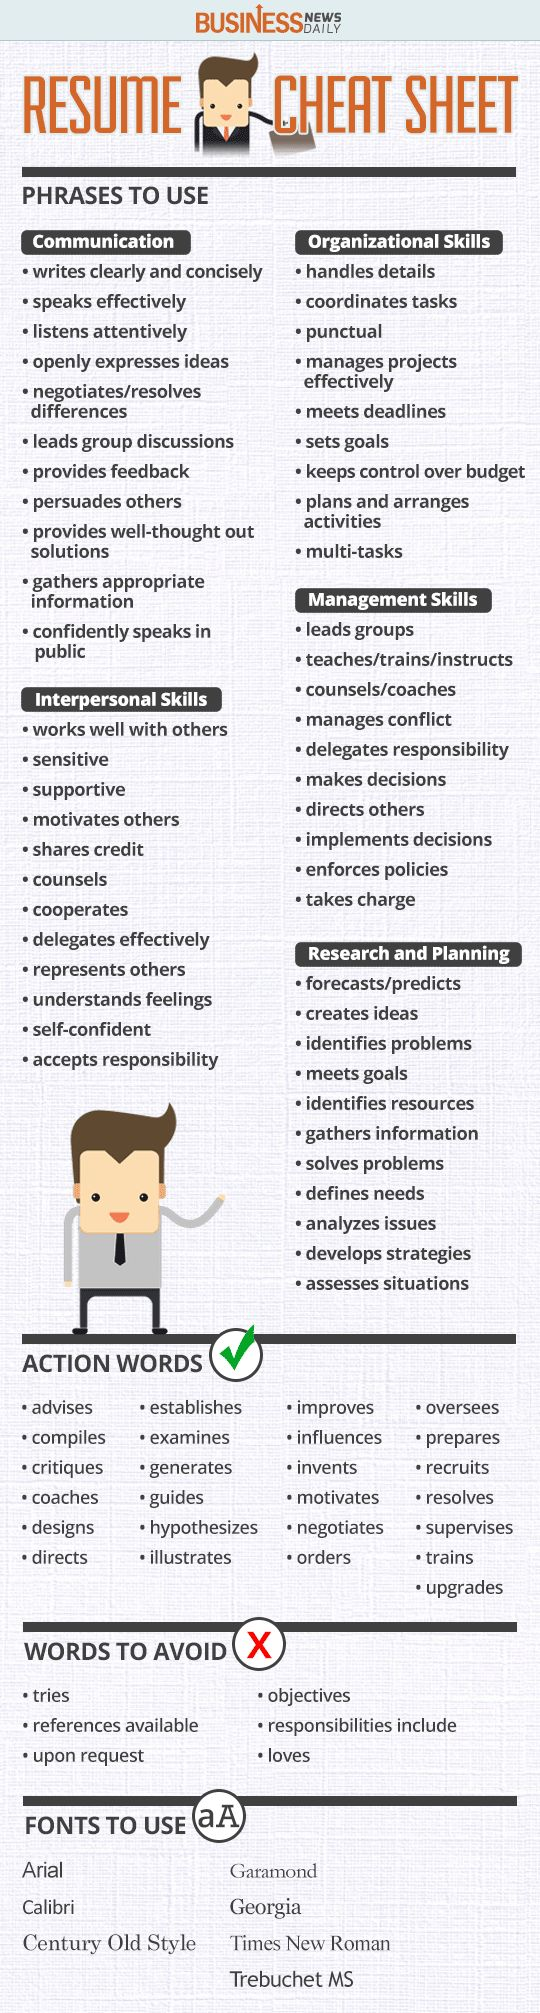 Opposenewapstandardsus  Prepossessing  Ideas About Resume On Pinterest  Cv Format Resume Cv And  With Inspiring Resume Cheat Sheet Infographic Andrews Almost Done With A Complete Unit On Employment Which With Adorable Computer Technician Resume Also Cna Resumes In Addition Free Resume Template For Word And Banking Resume As Well As High School Resume Builder Additionally Librarian Resume From Pinterestcom With Opposenewapstandardsus  Inspiring  Ideas About Resume On Pinterest  Cv Format Resume Cv And  With Adorable Resume Cheat Sheet Infographic Andrews Almost Done With A Complete Unit On Employment Which And Prepossessing Computer Technician Resume Also Cna Resumes In Addition Free Resume Template For Word From Pinterestcom